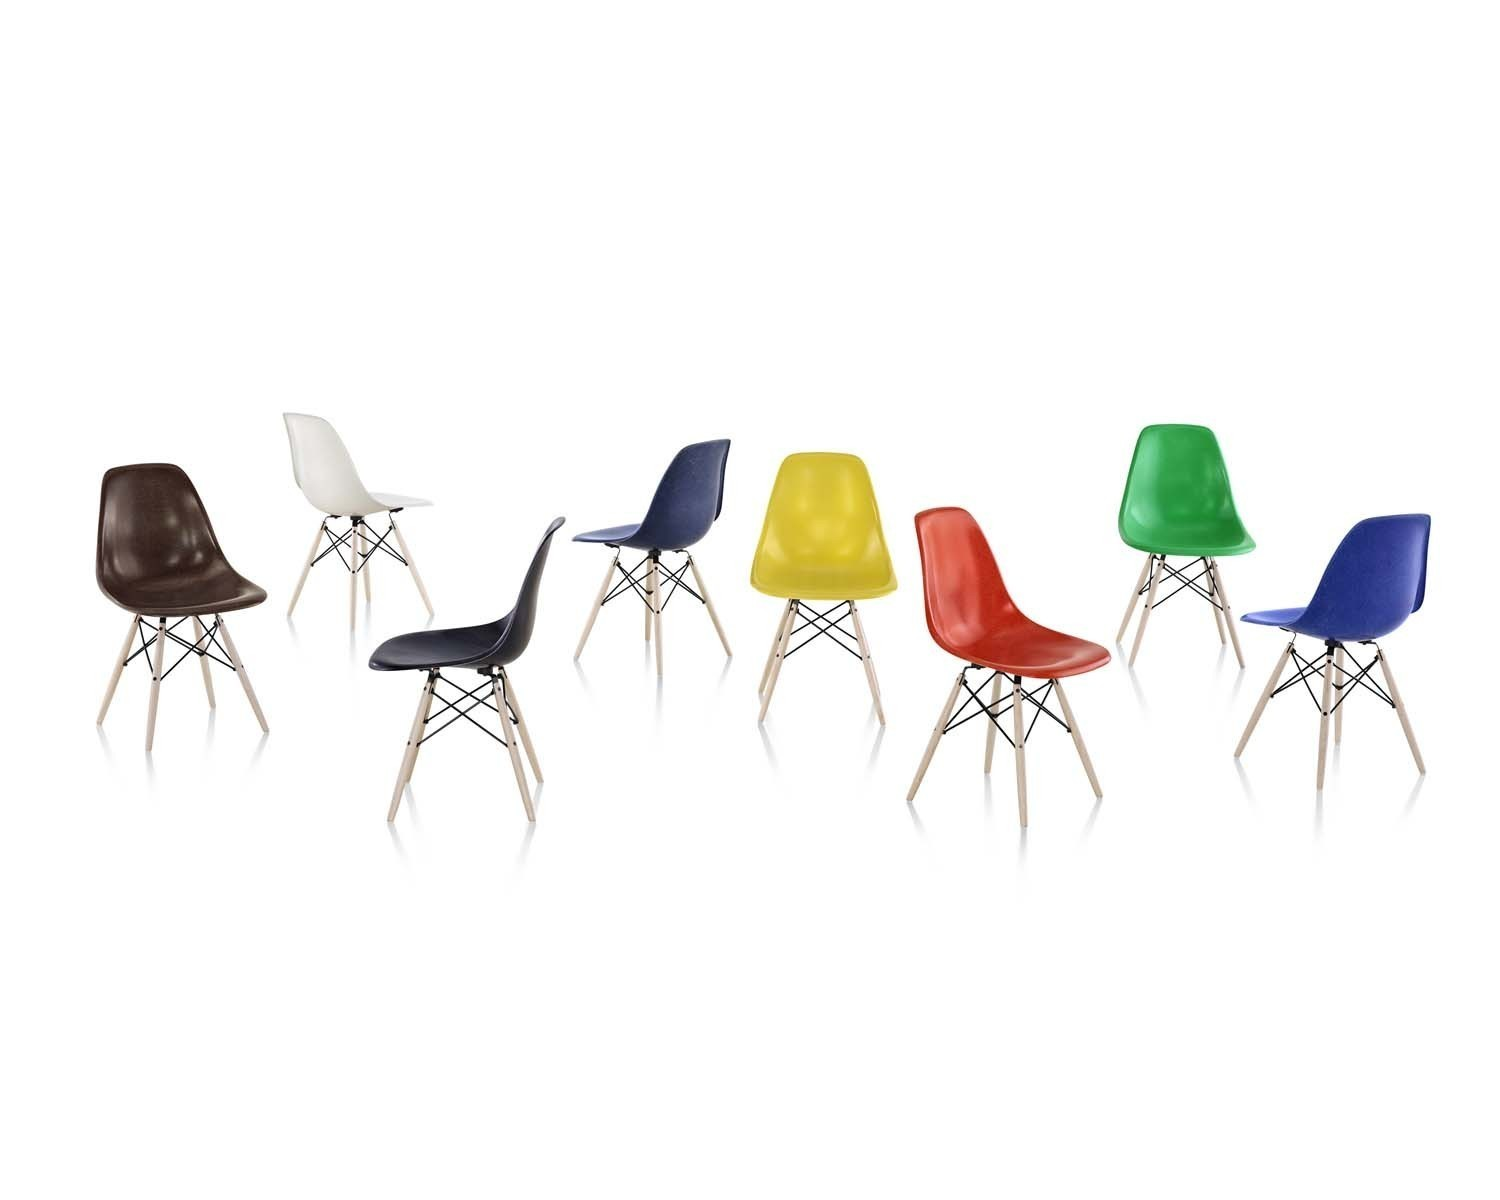 Herman Miller Brings Back Classic Eames Chair In Recyclable Fiberglass   LA  Times